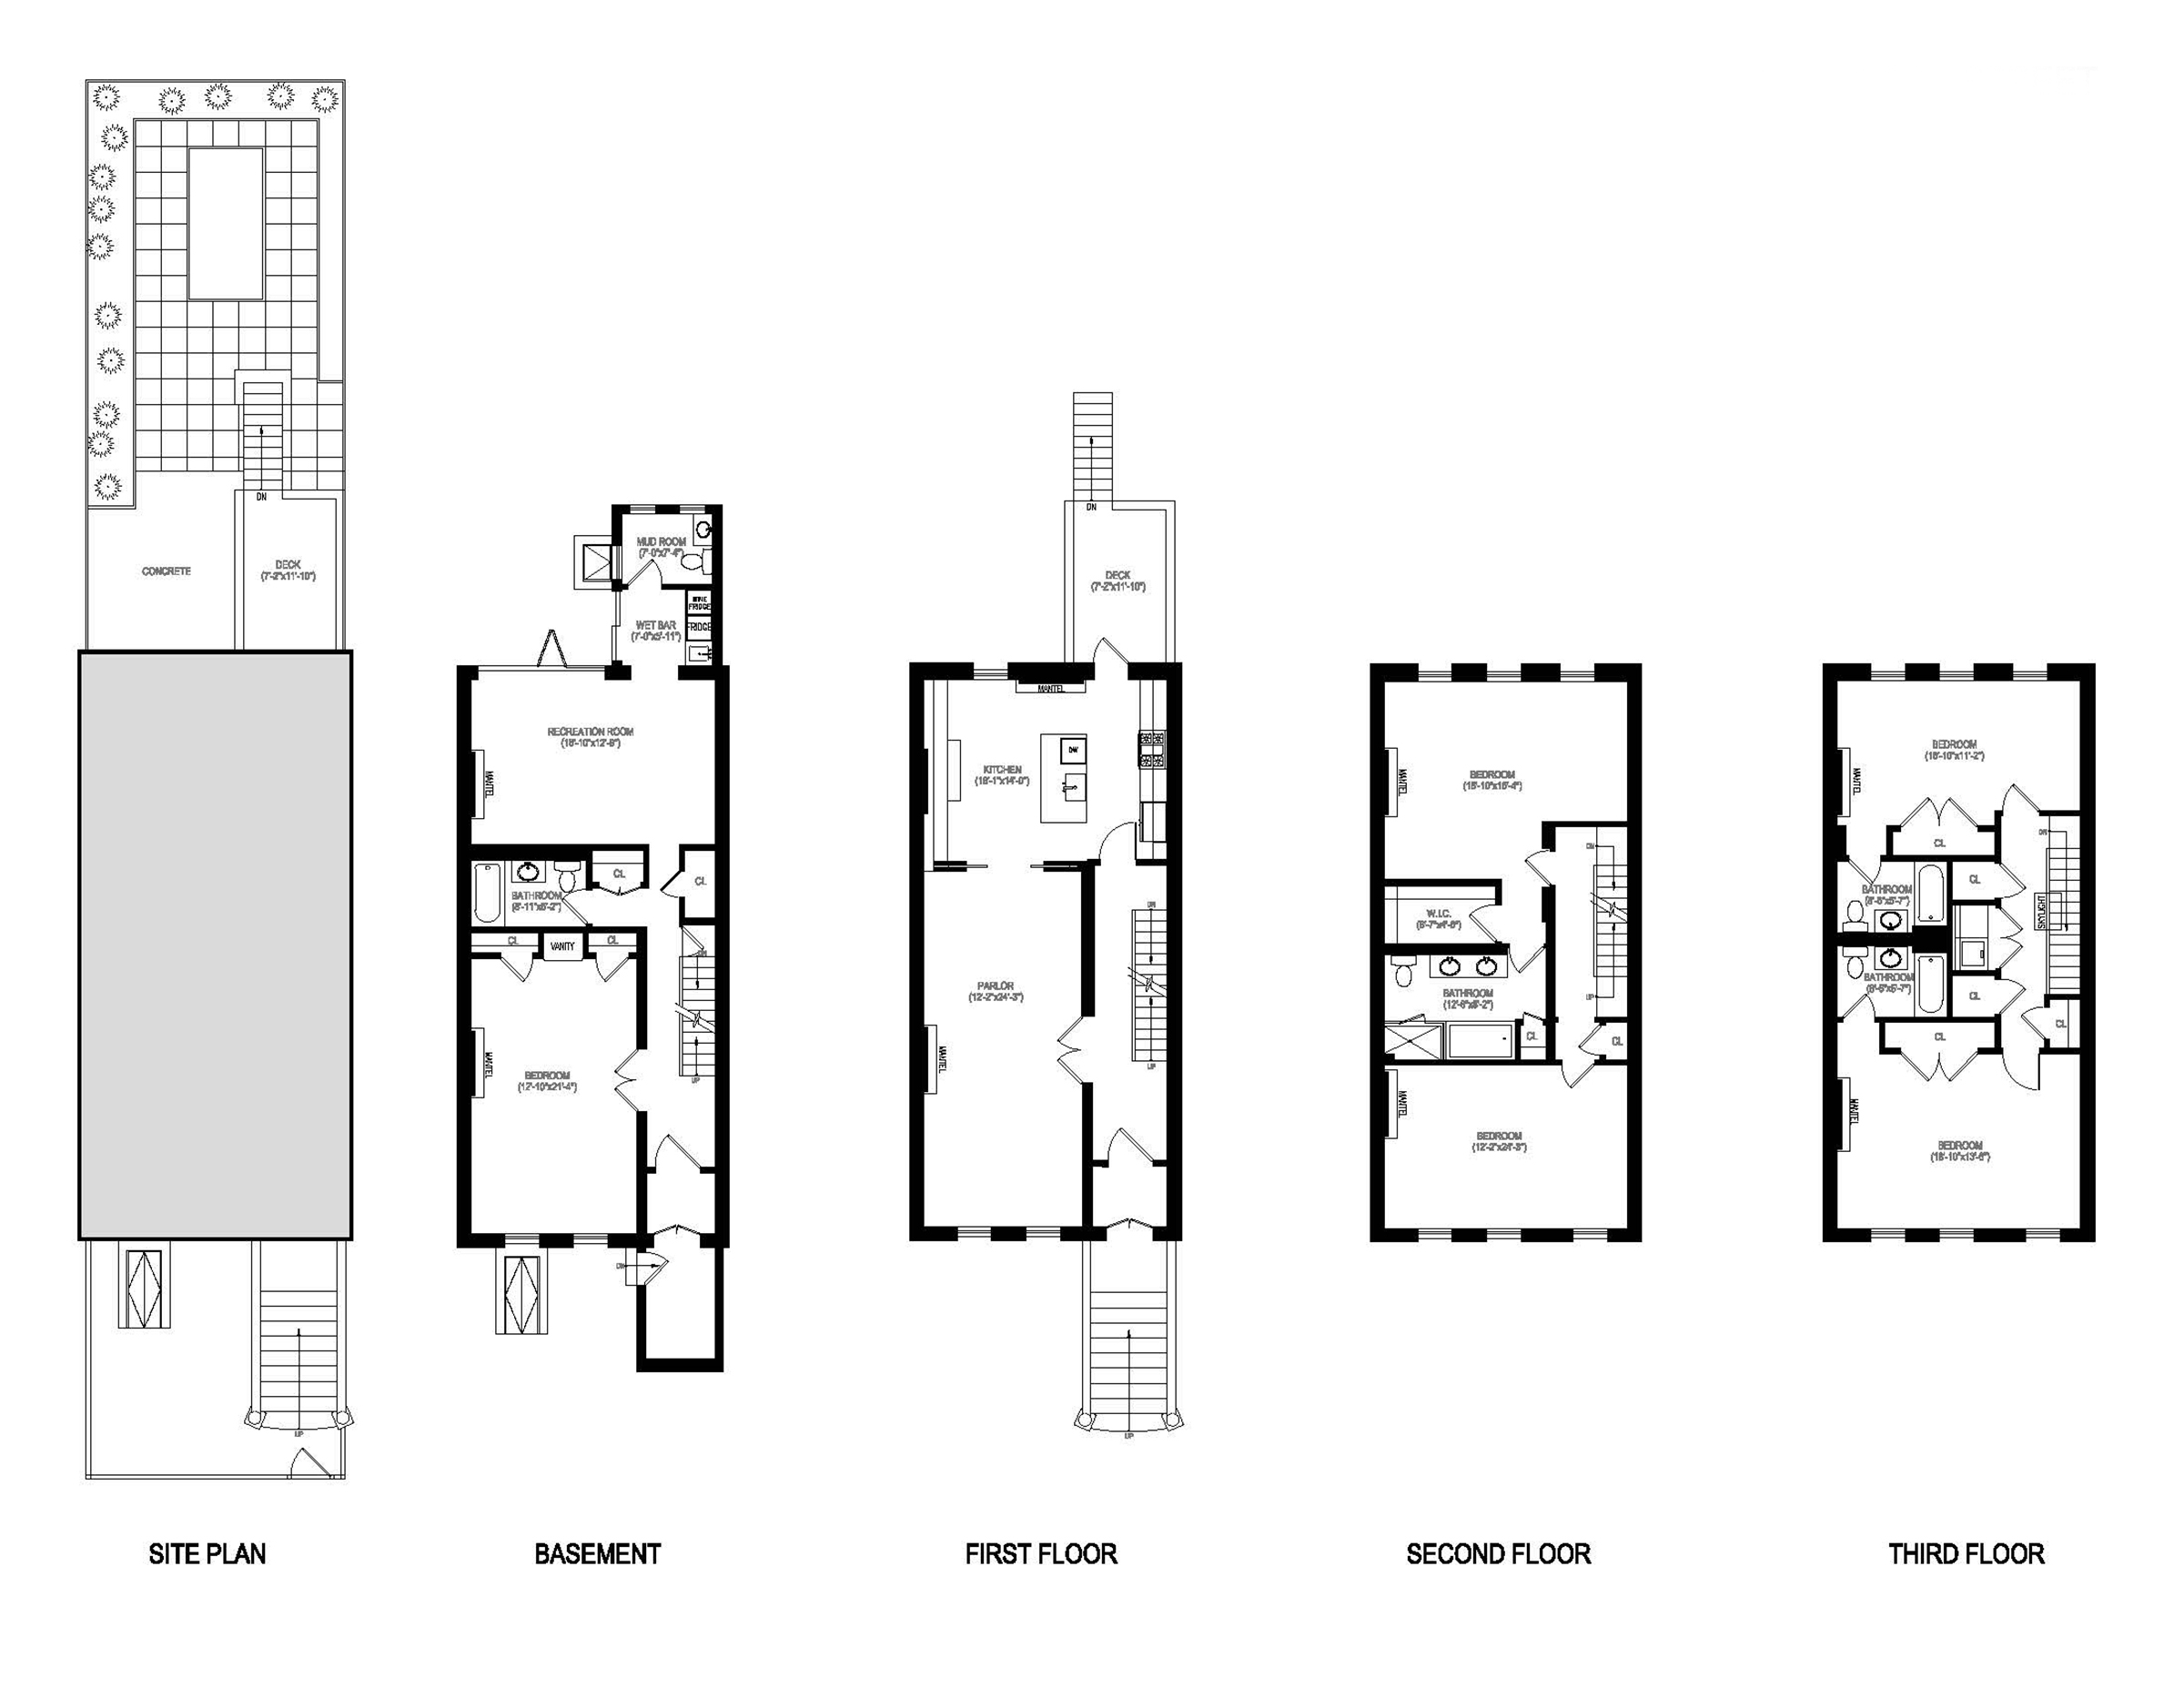 2015.03.27_Proposed Marketing Floor Plans_201 Hancock Street_web.jpg